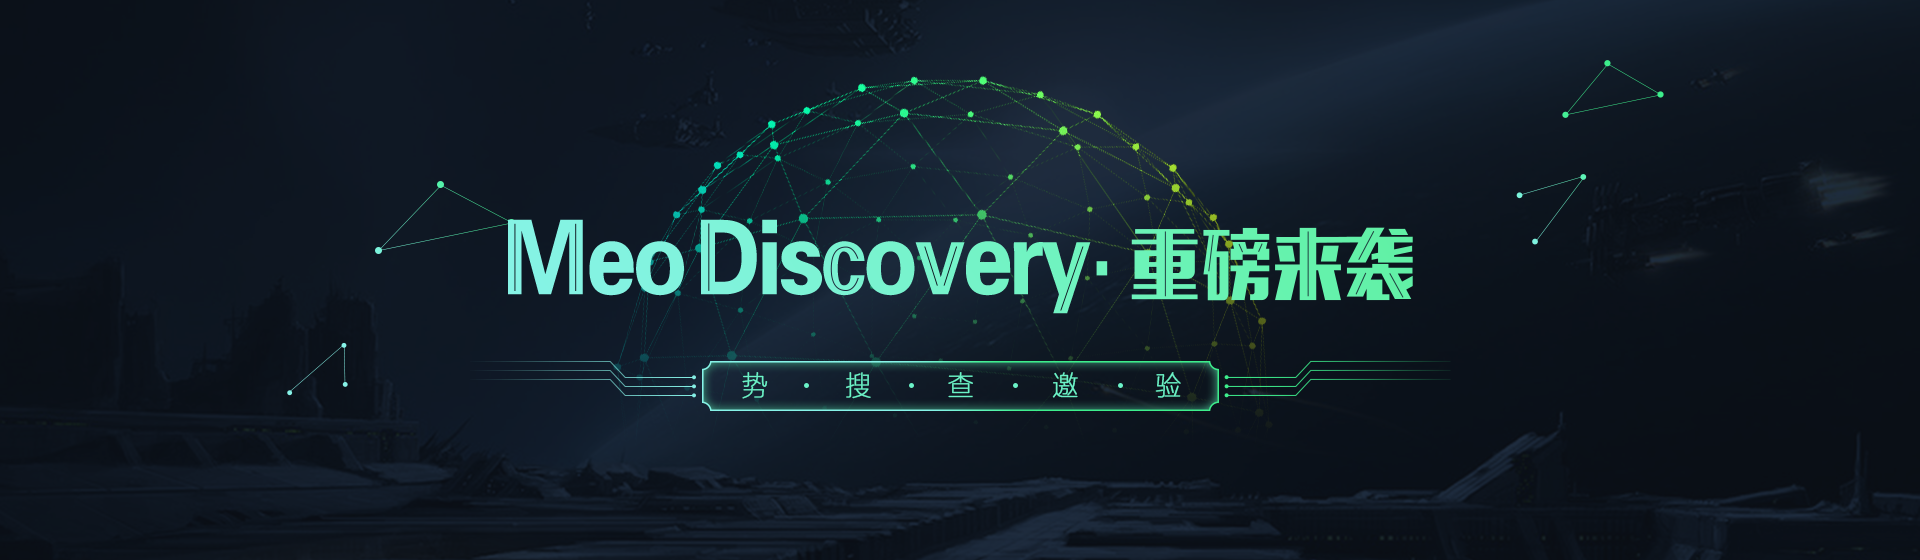 Meo  discovery